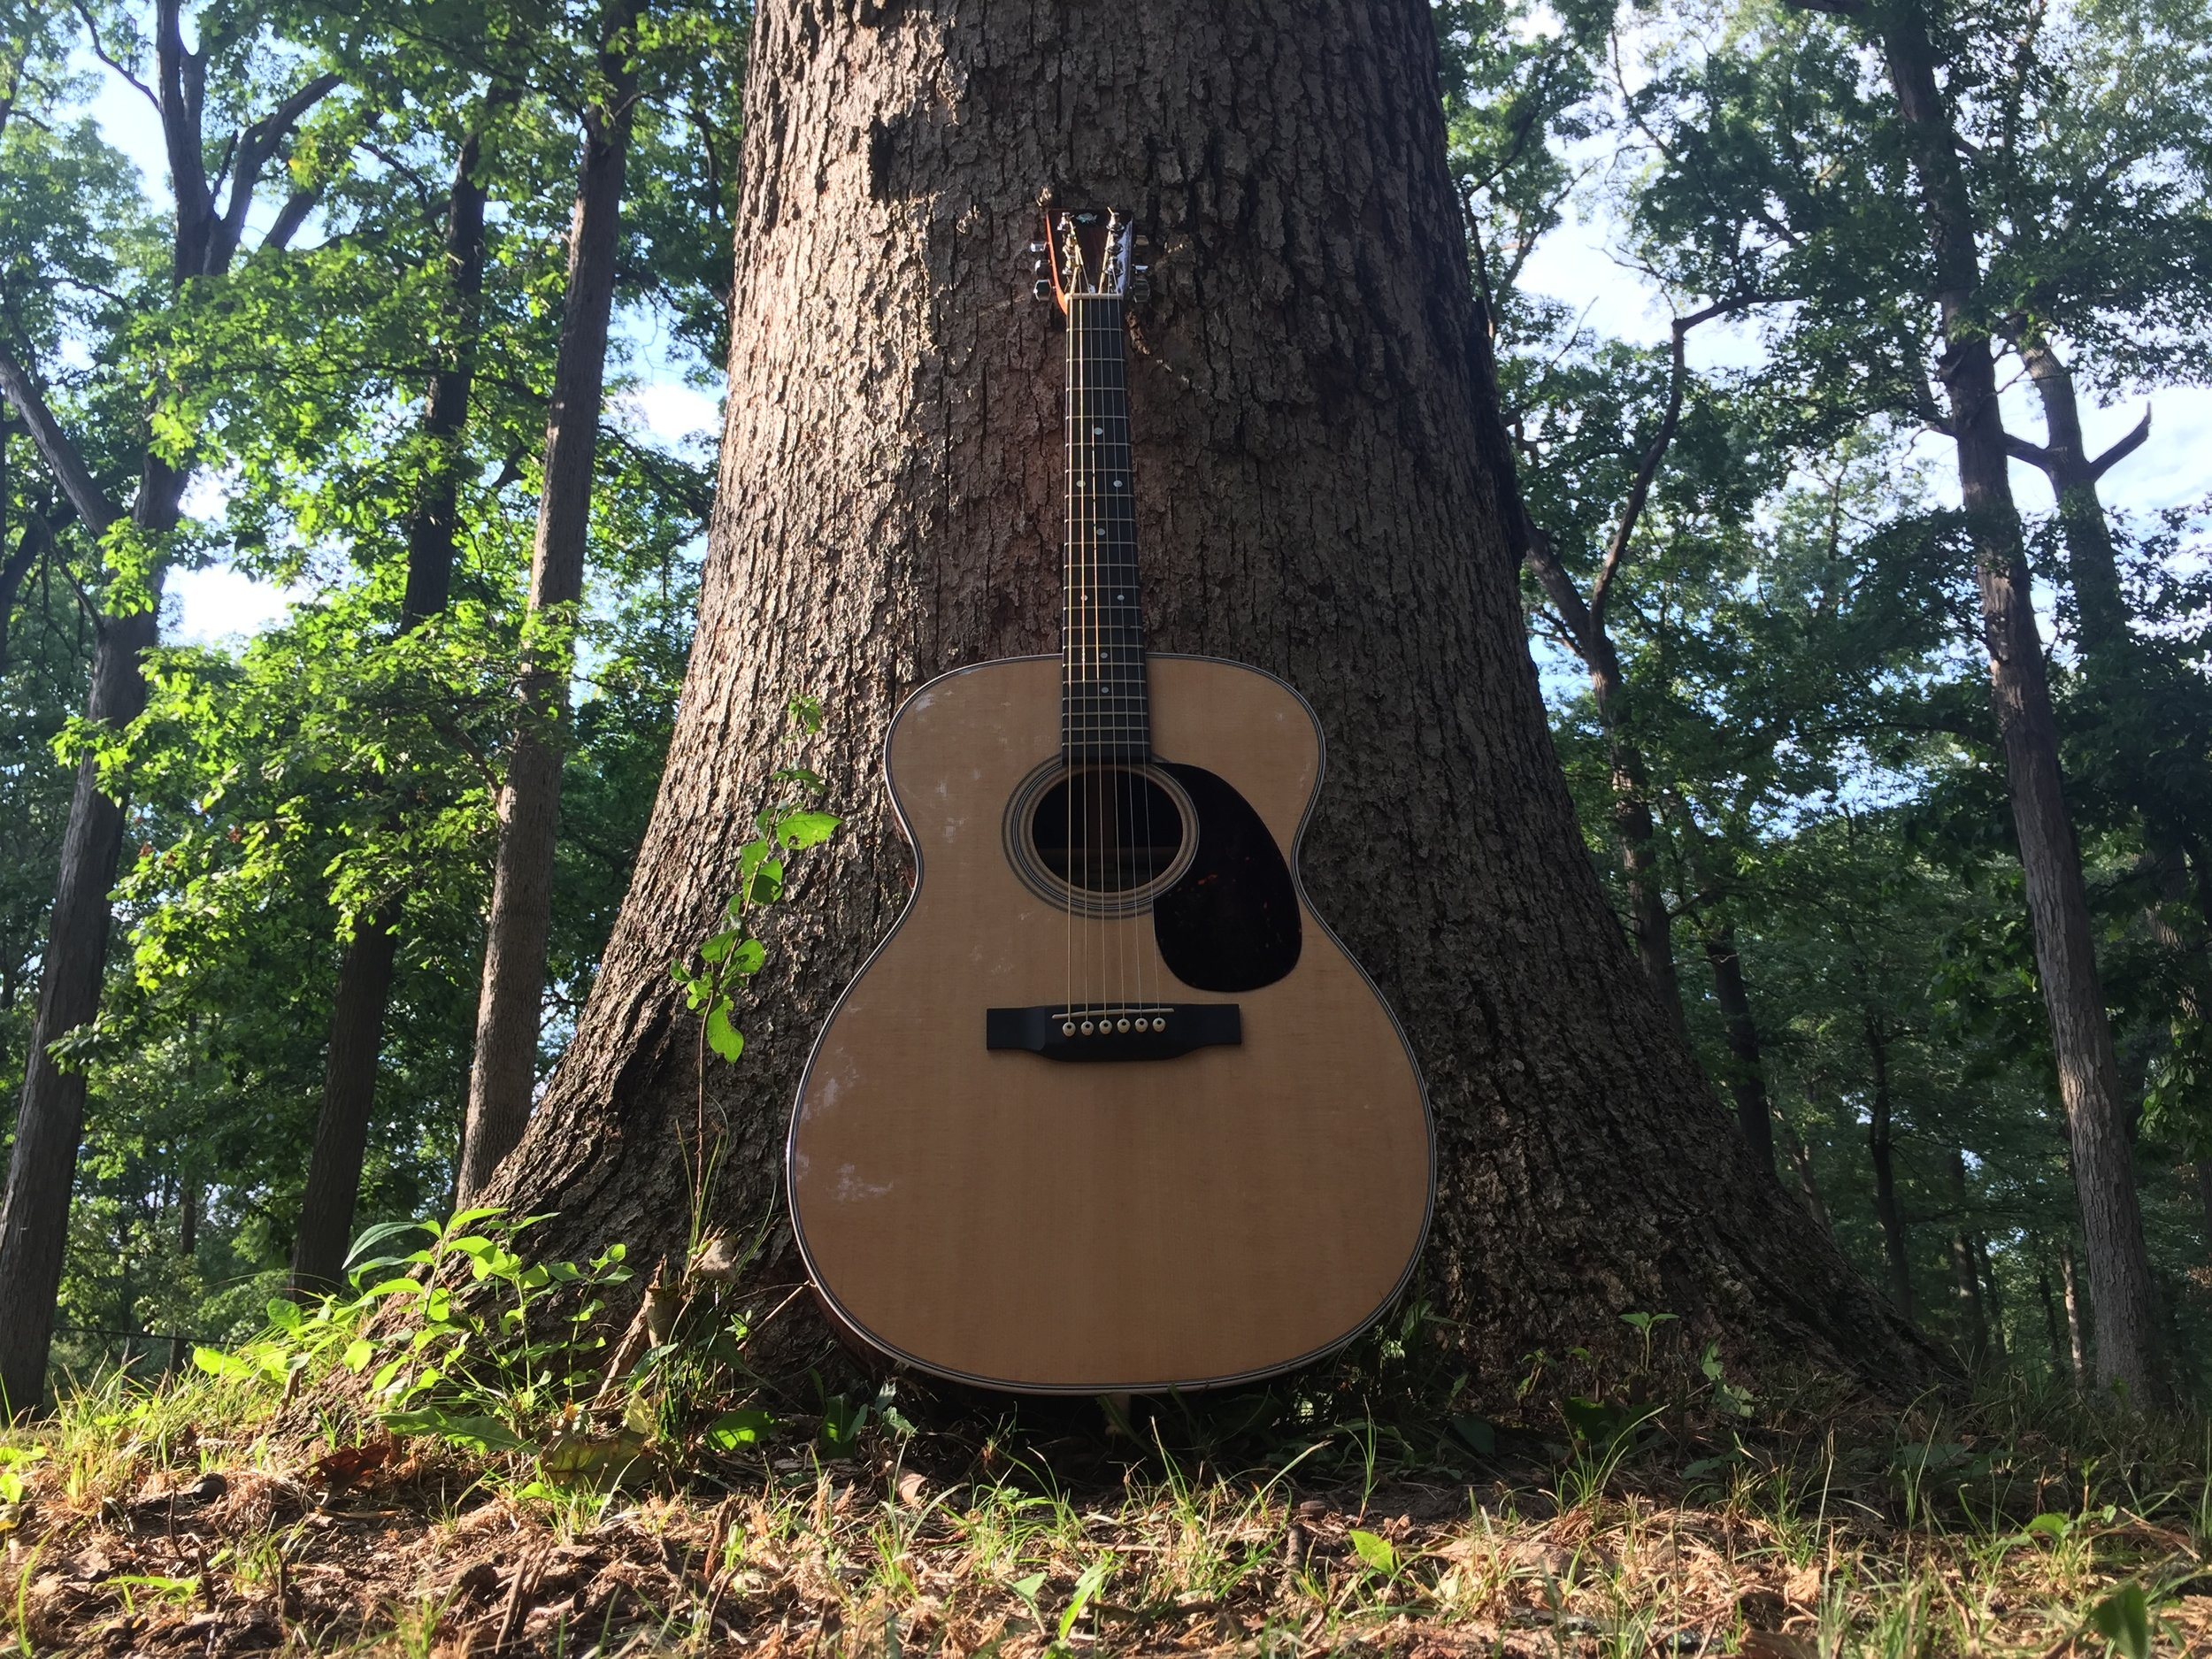 Make An Acoustic Guitar - Woodworking Classes at the Sam Beauford Woodworking Institute